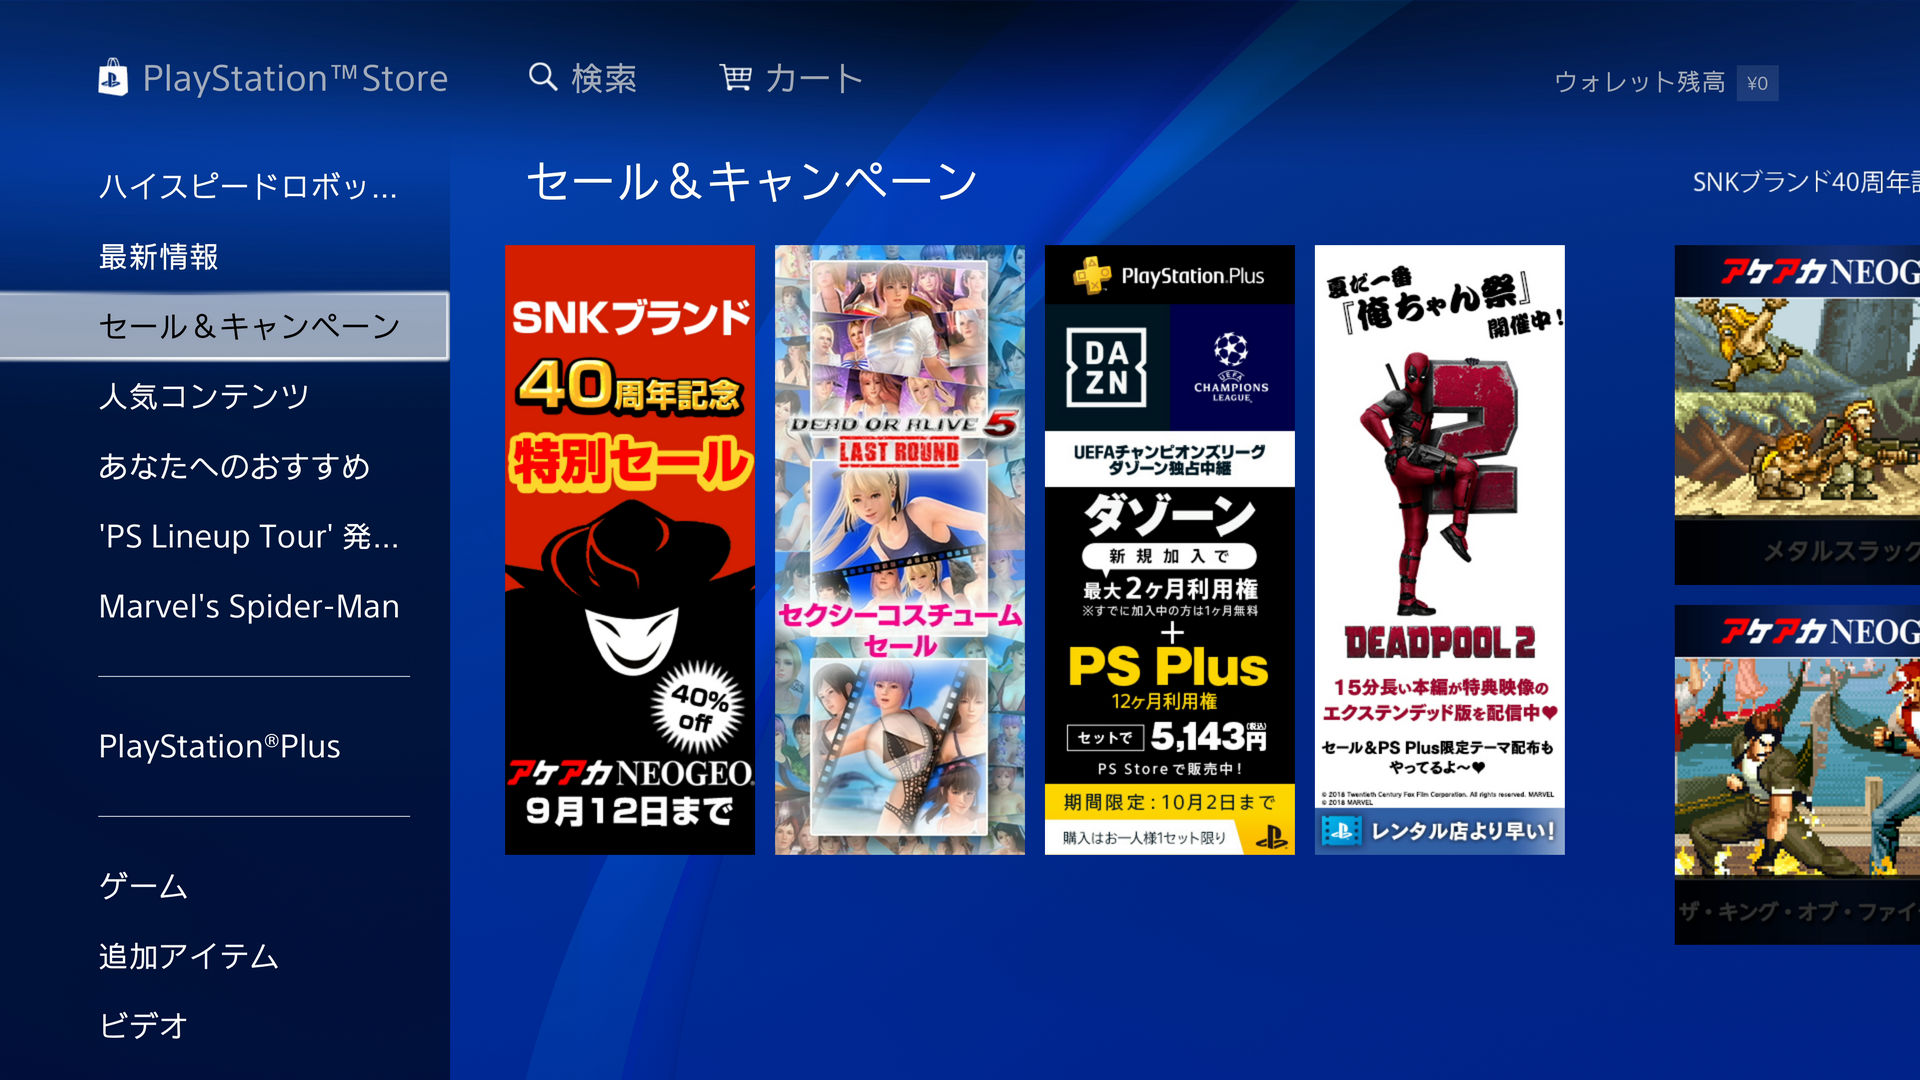 How to create a Japanese PSN account to get Japan-exclusive